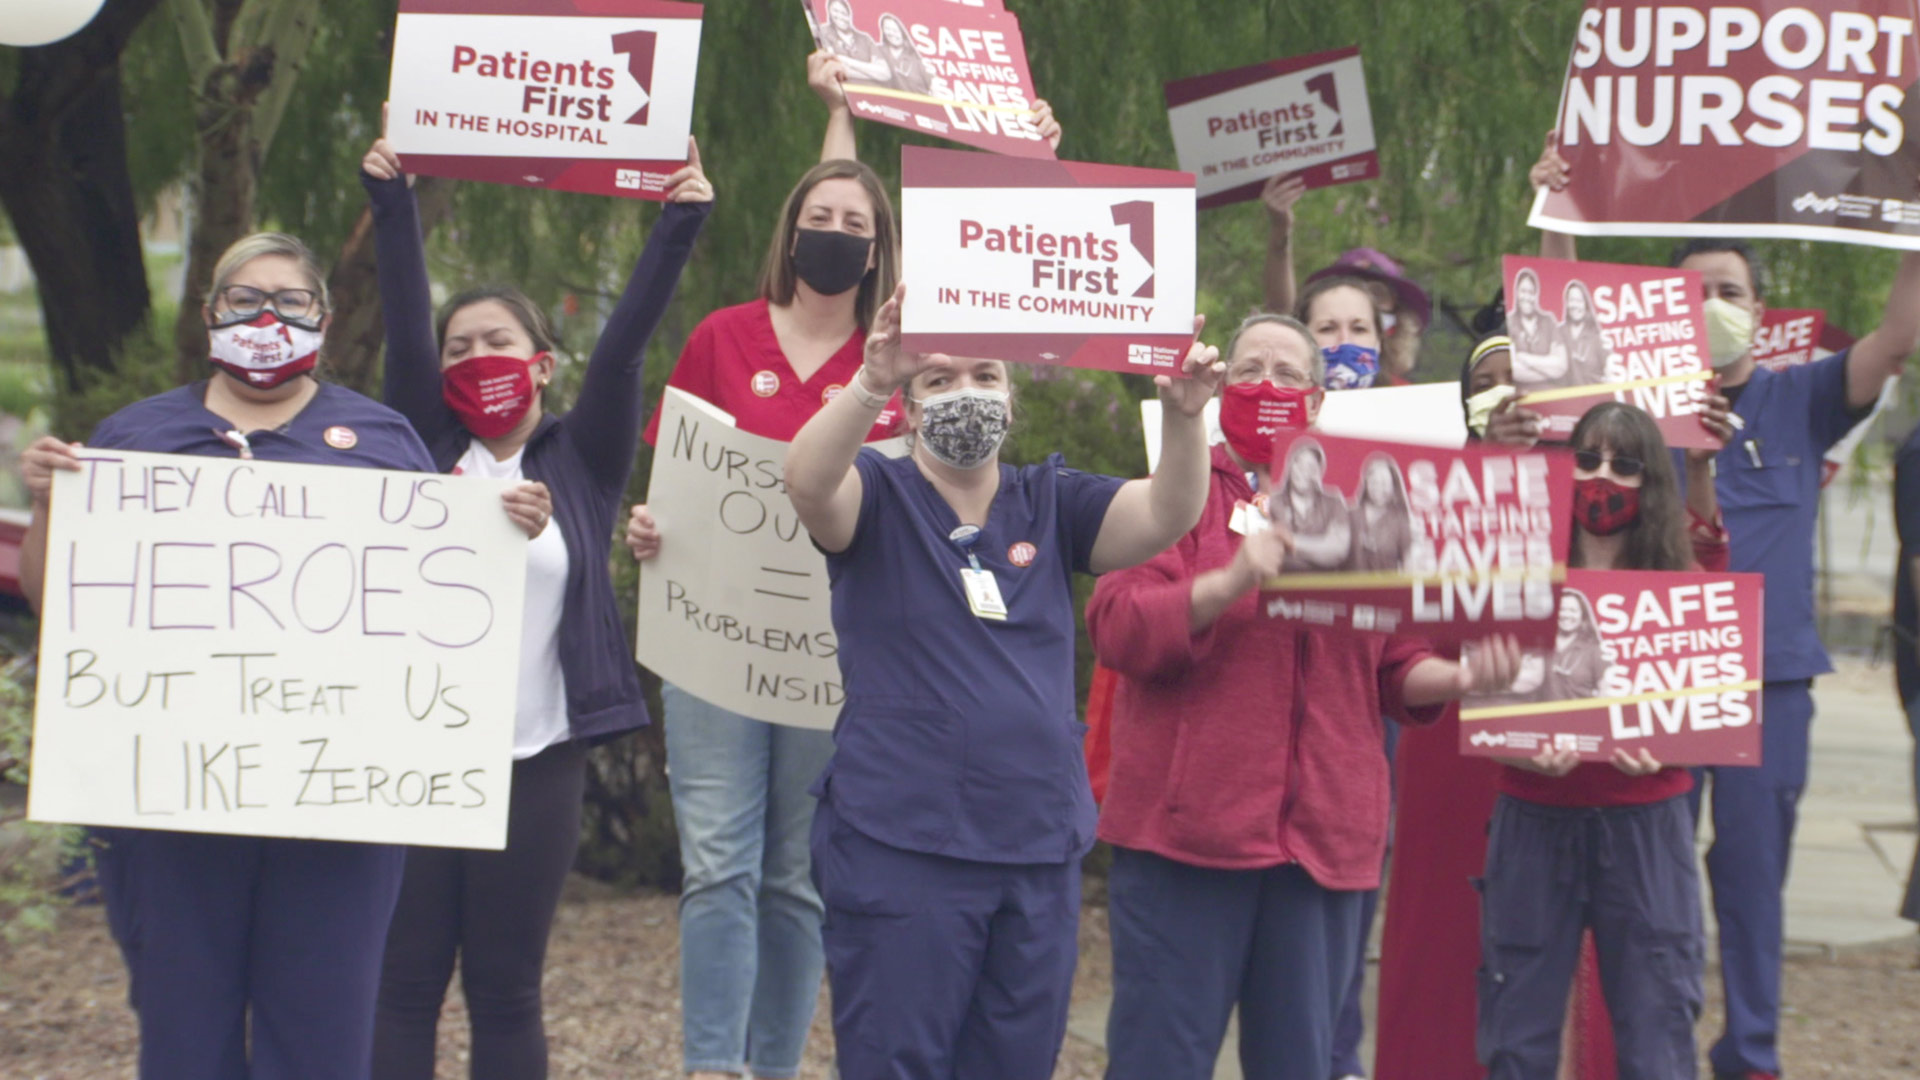 Nurses protest in front of St. Mary's Hospital in Tucson. July 14, 2021